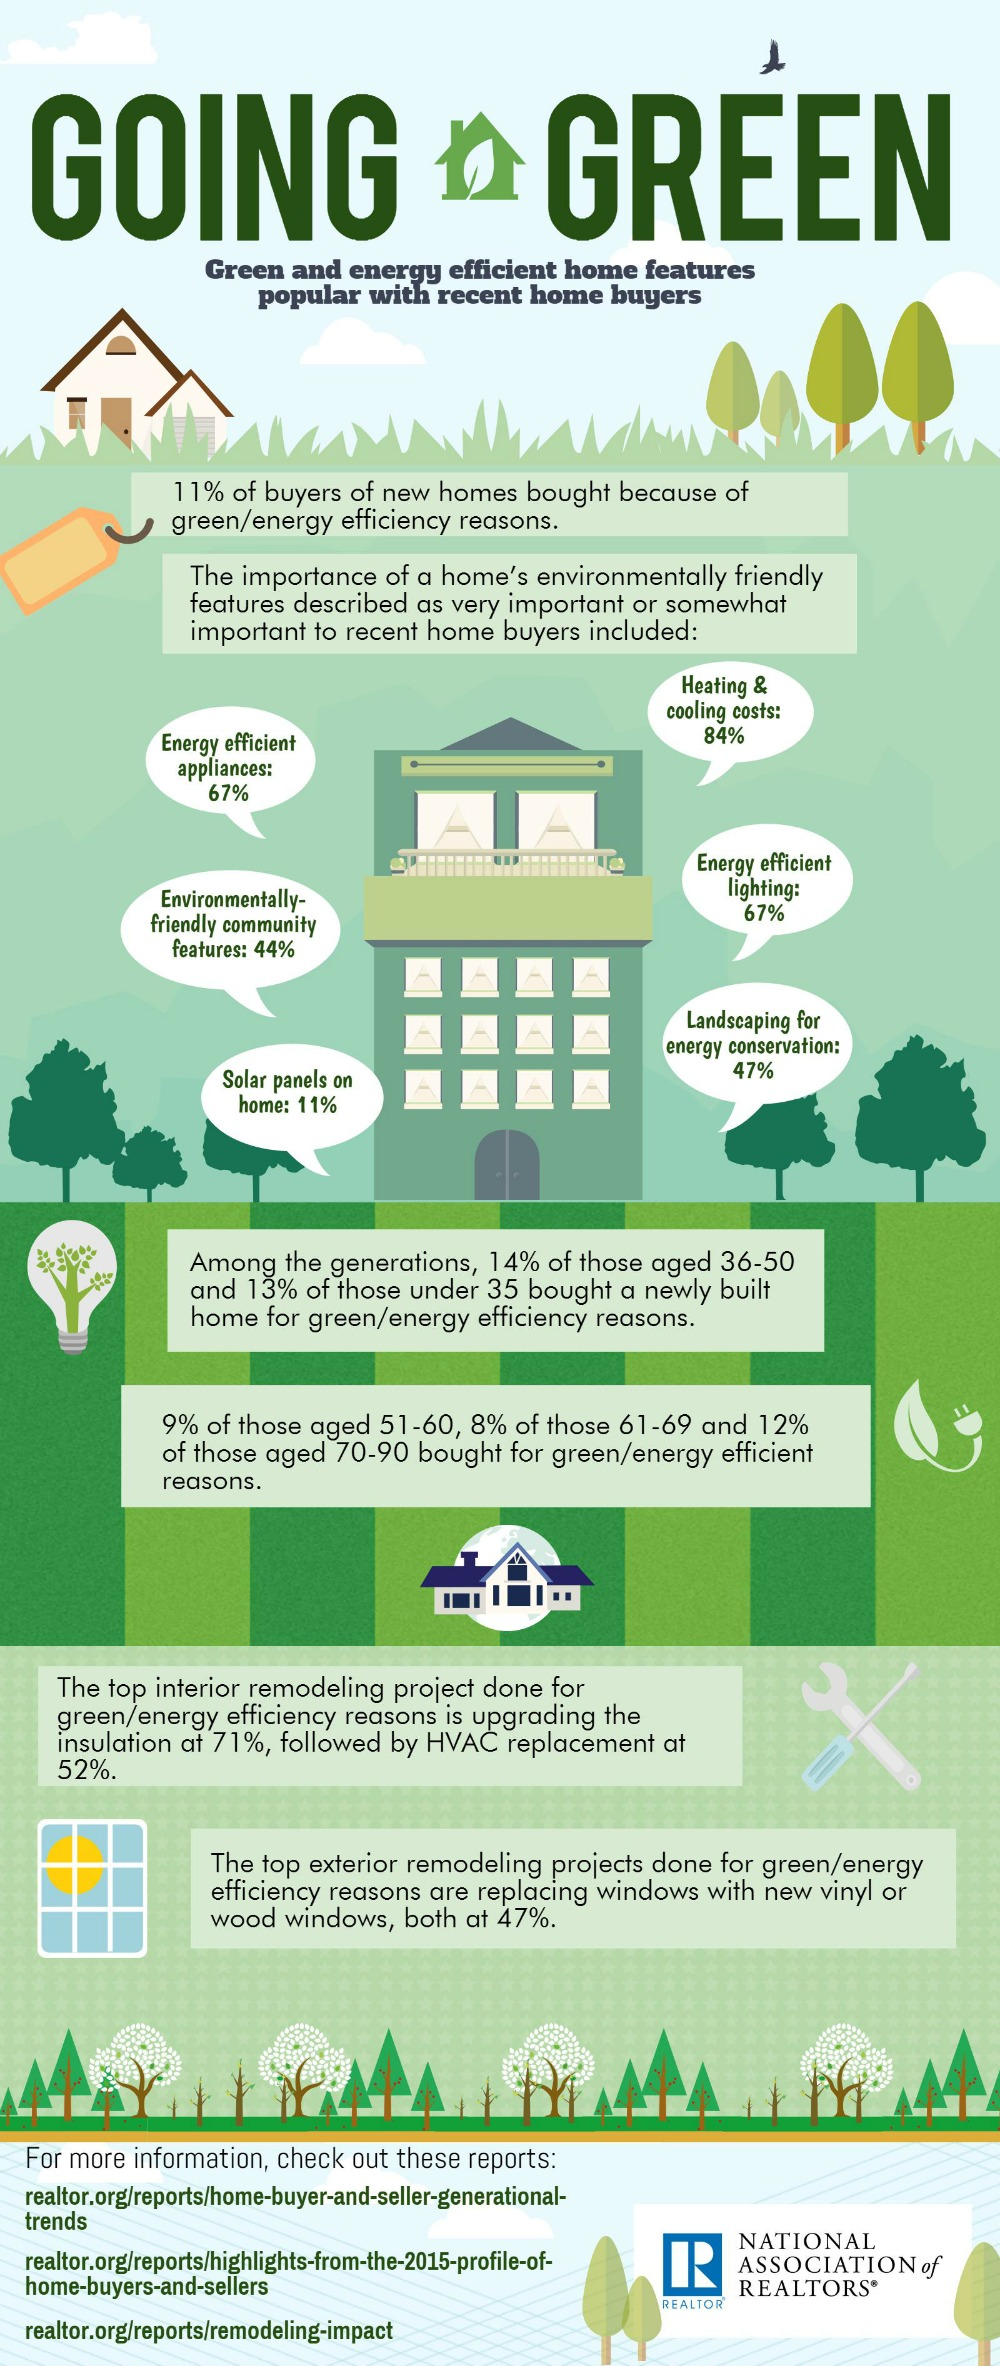 green-home-features-infographic-03-11-2016-full